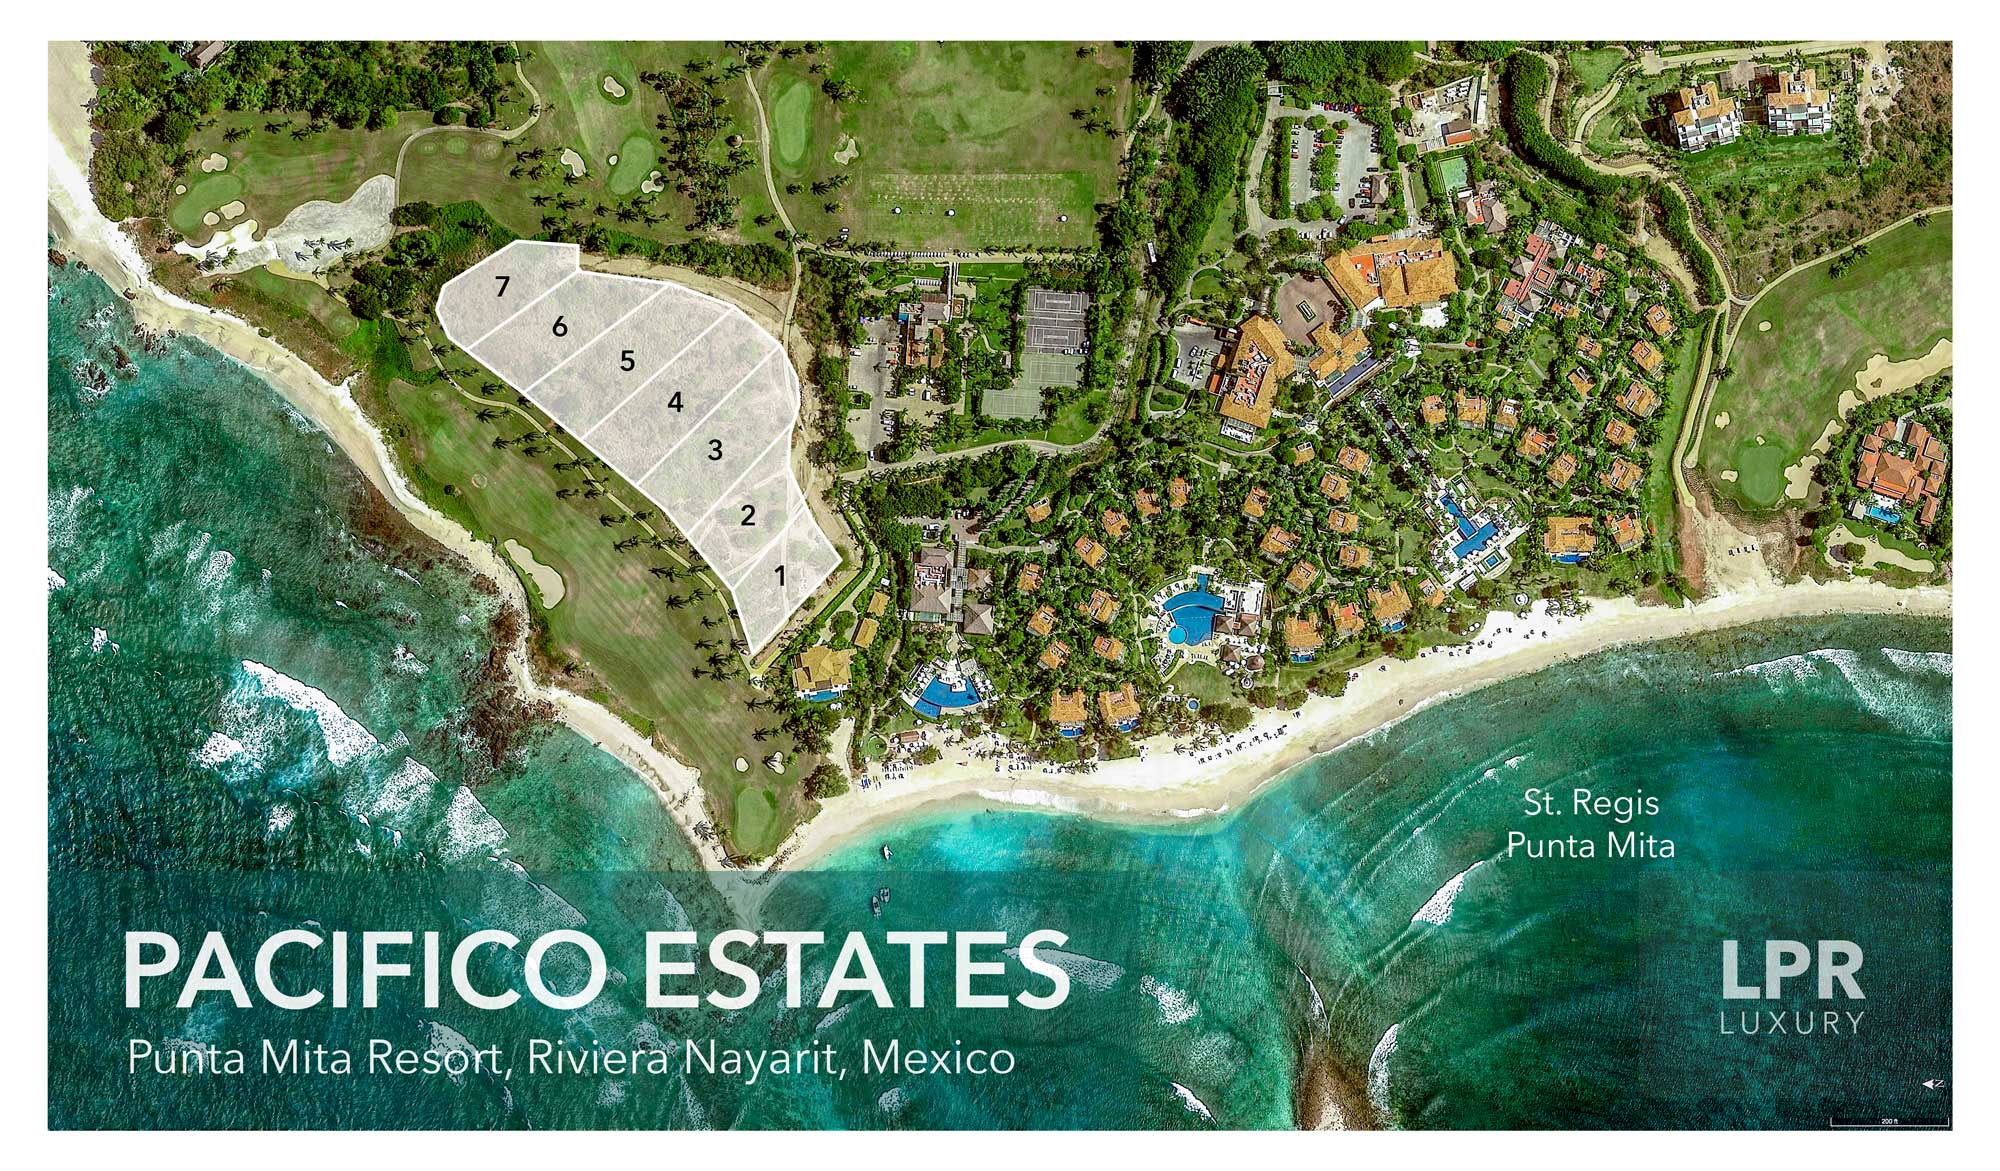 Pacifico Estates - Homesite building lots for sale next to the St. Regis at the Punta Mita Resort, Riviera Nayarit, Mexio